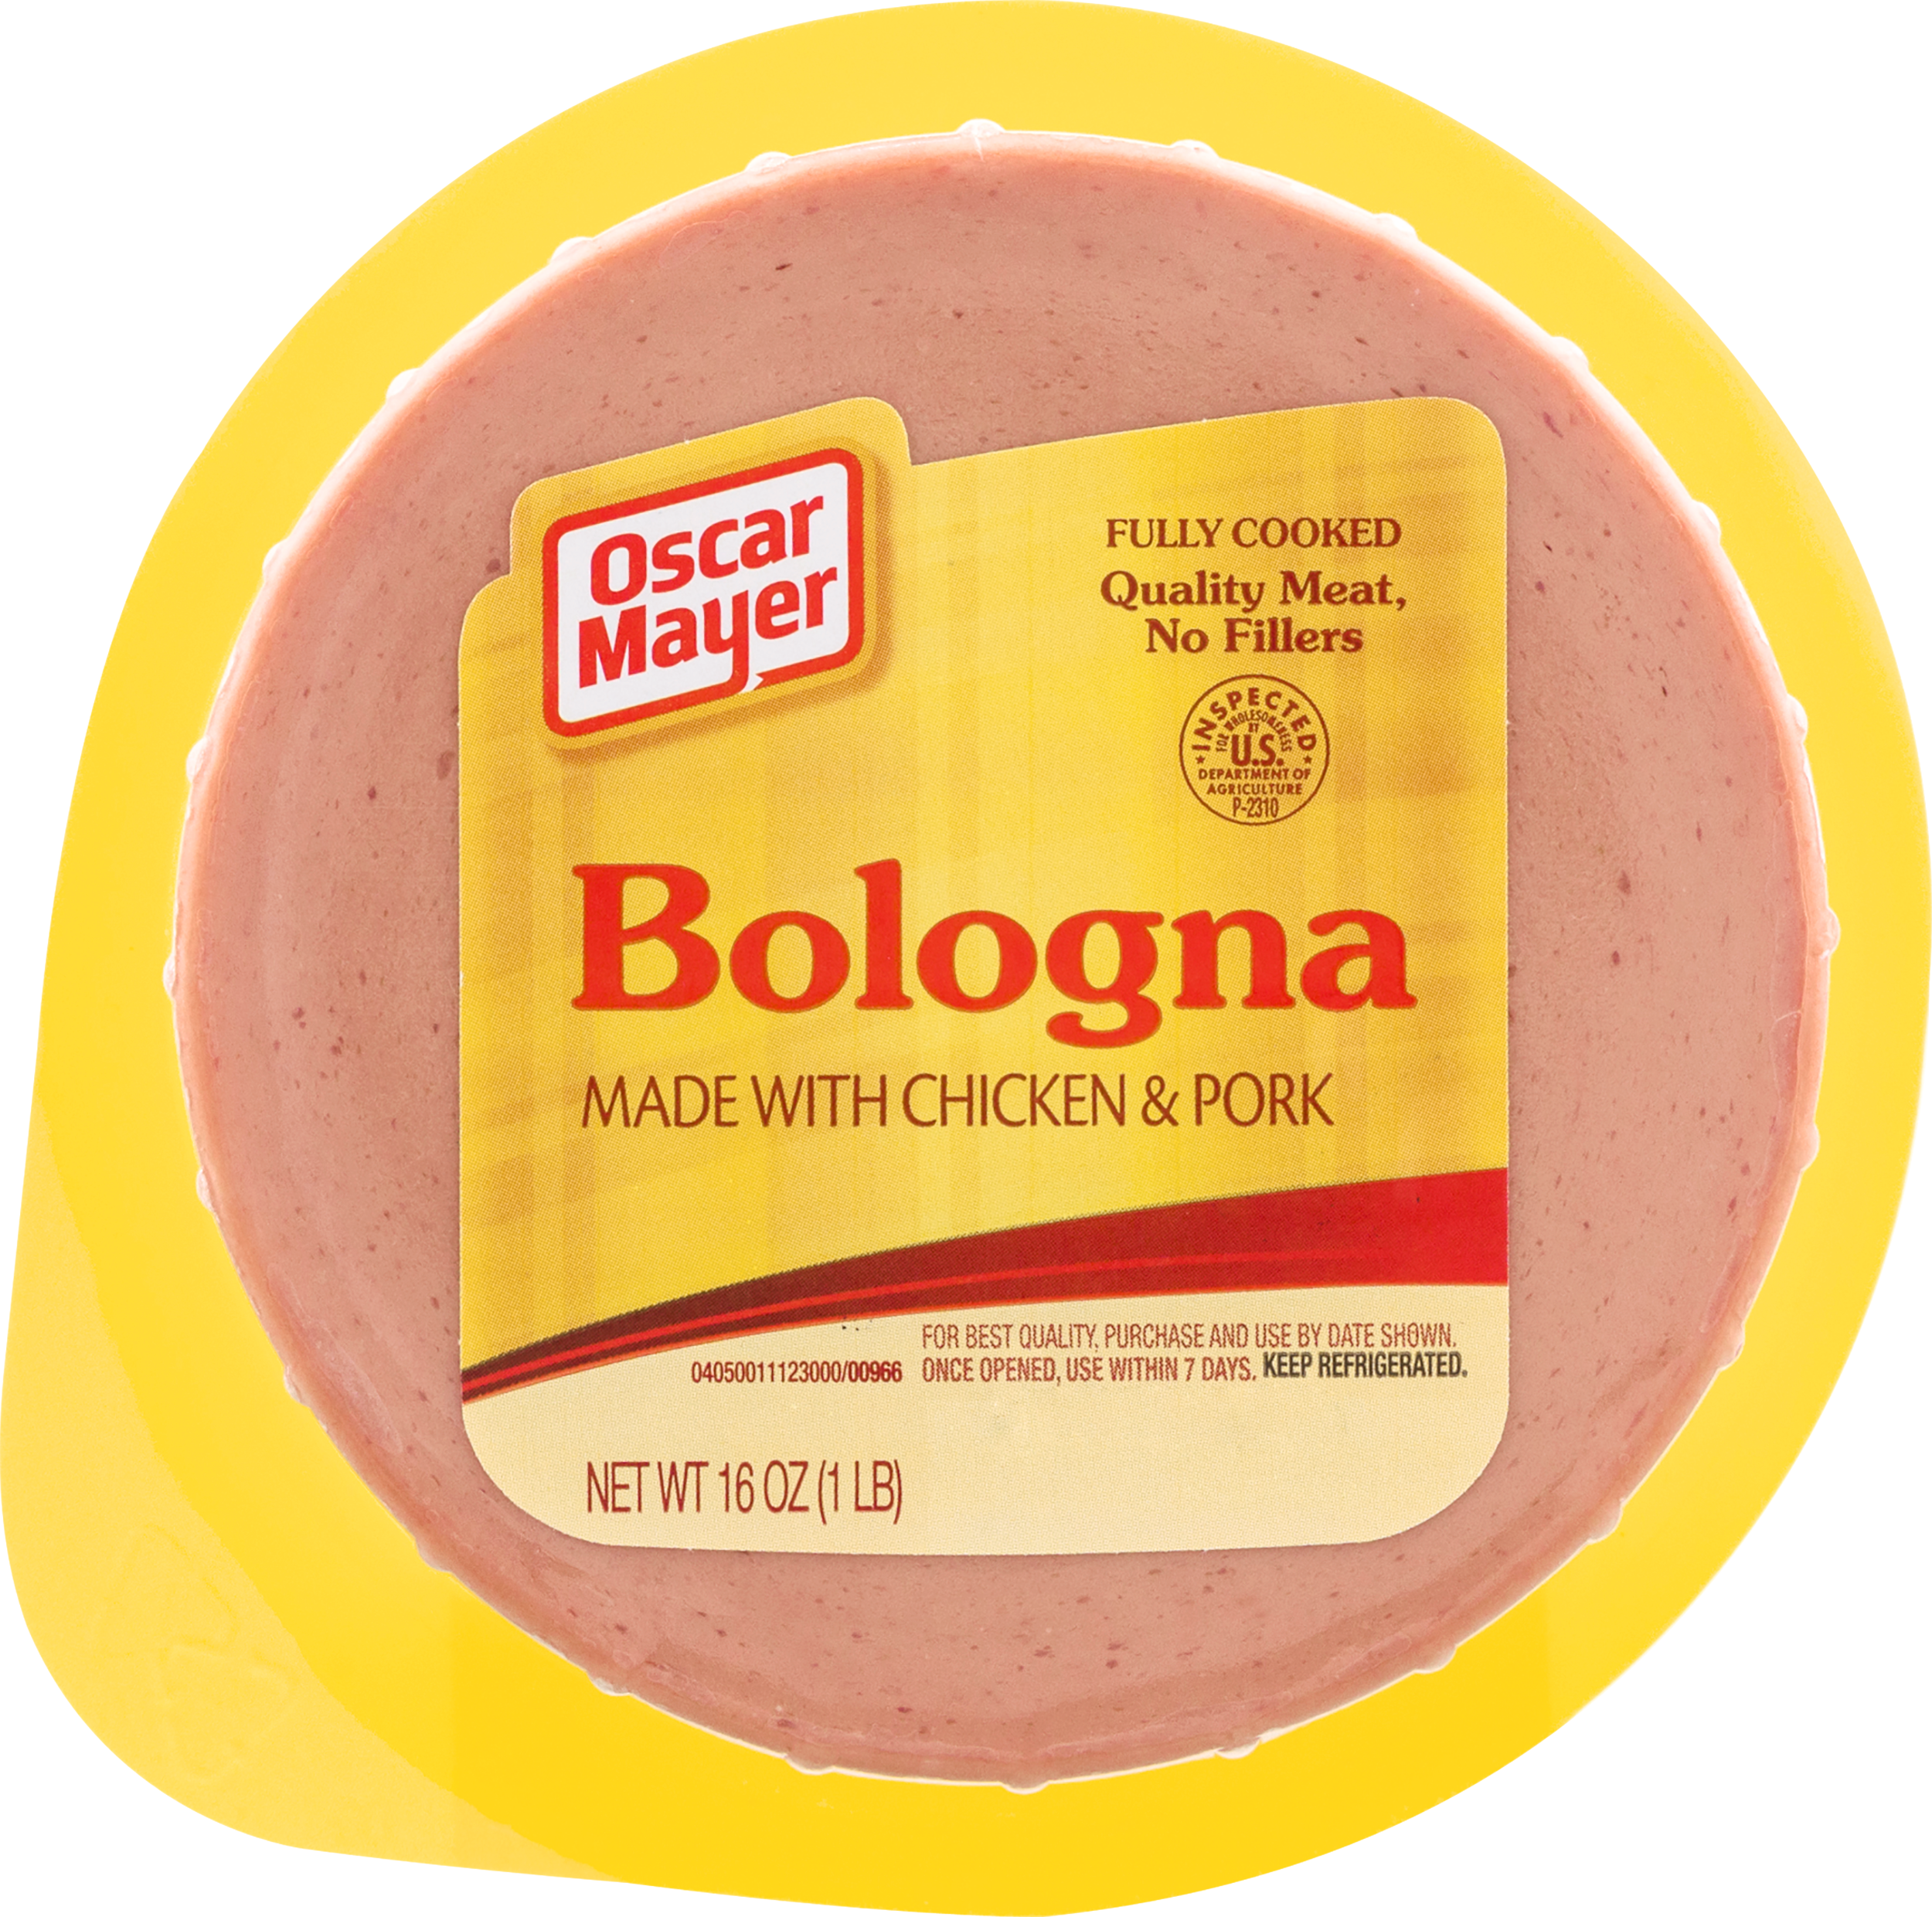 25 Inedibly Nasty Lunch Meat Products furthermore Baloney Or Bologna furthermore Youre Phoney Full Of Baloney Like Oscar Mayer also Food as well Oscar Mayer Bologna 16oz Pack 1591. on oscar mayer meat bologna